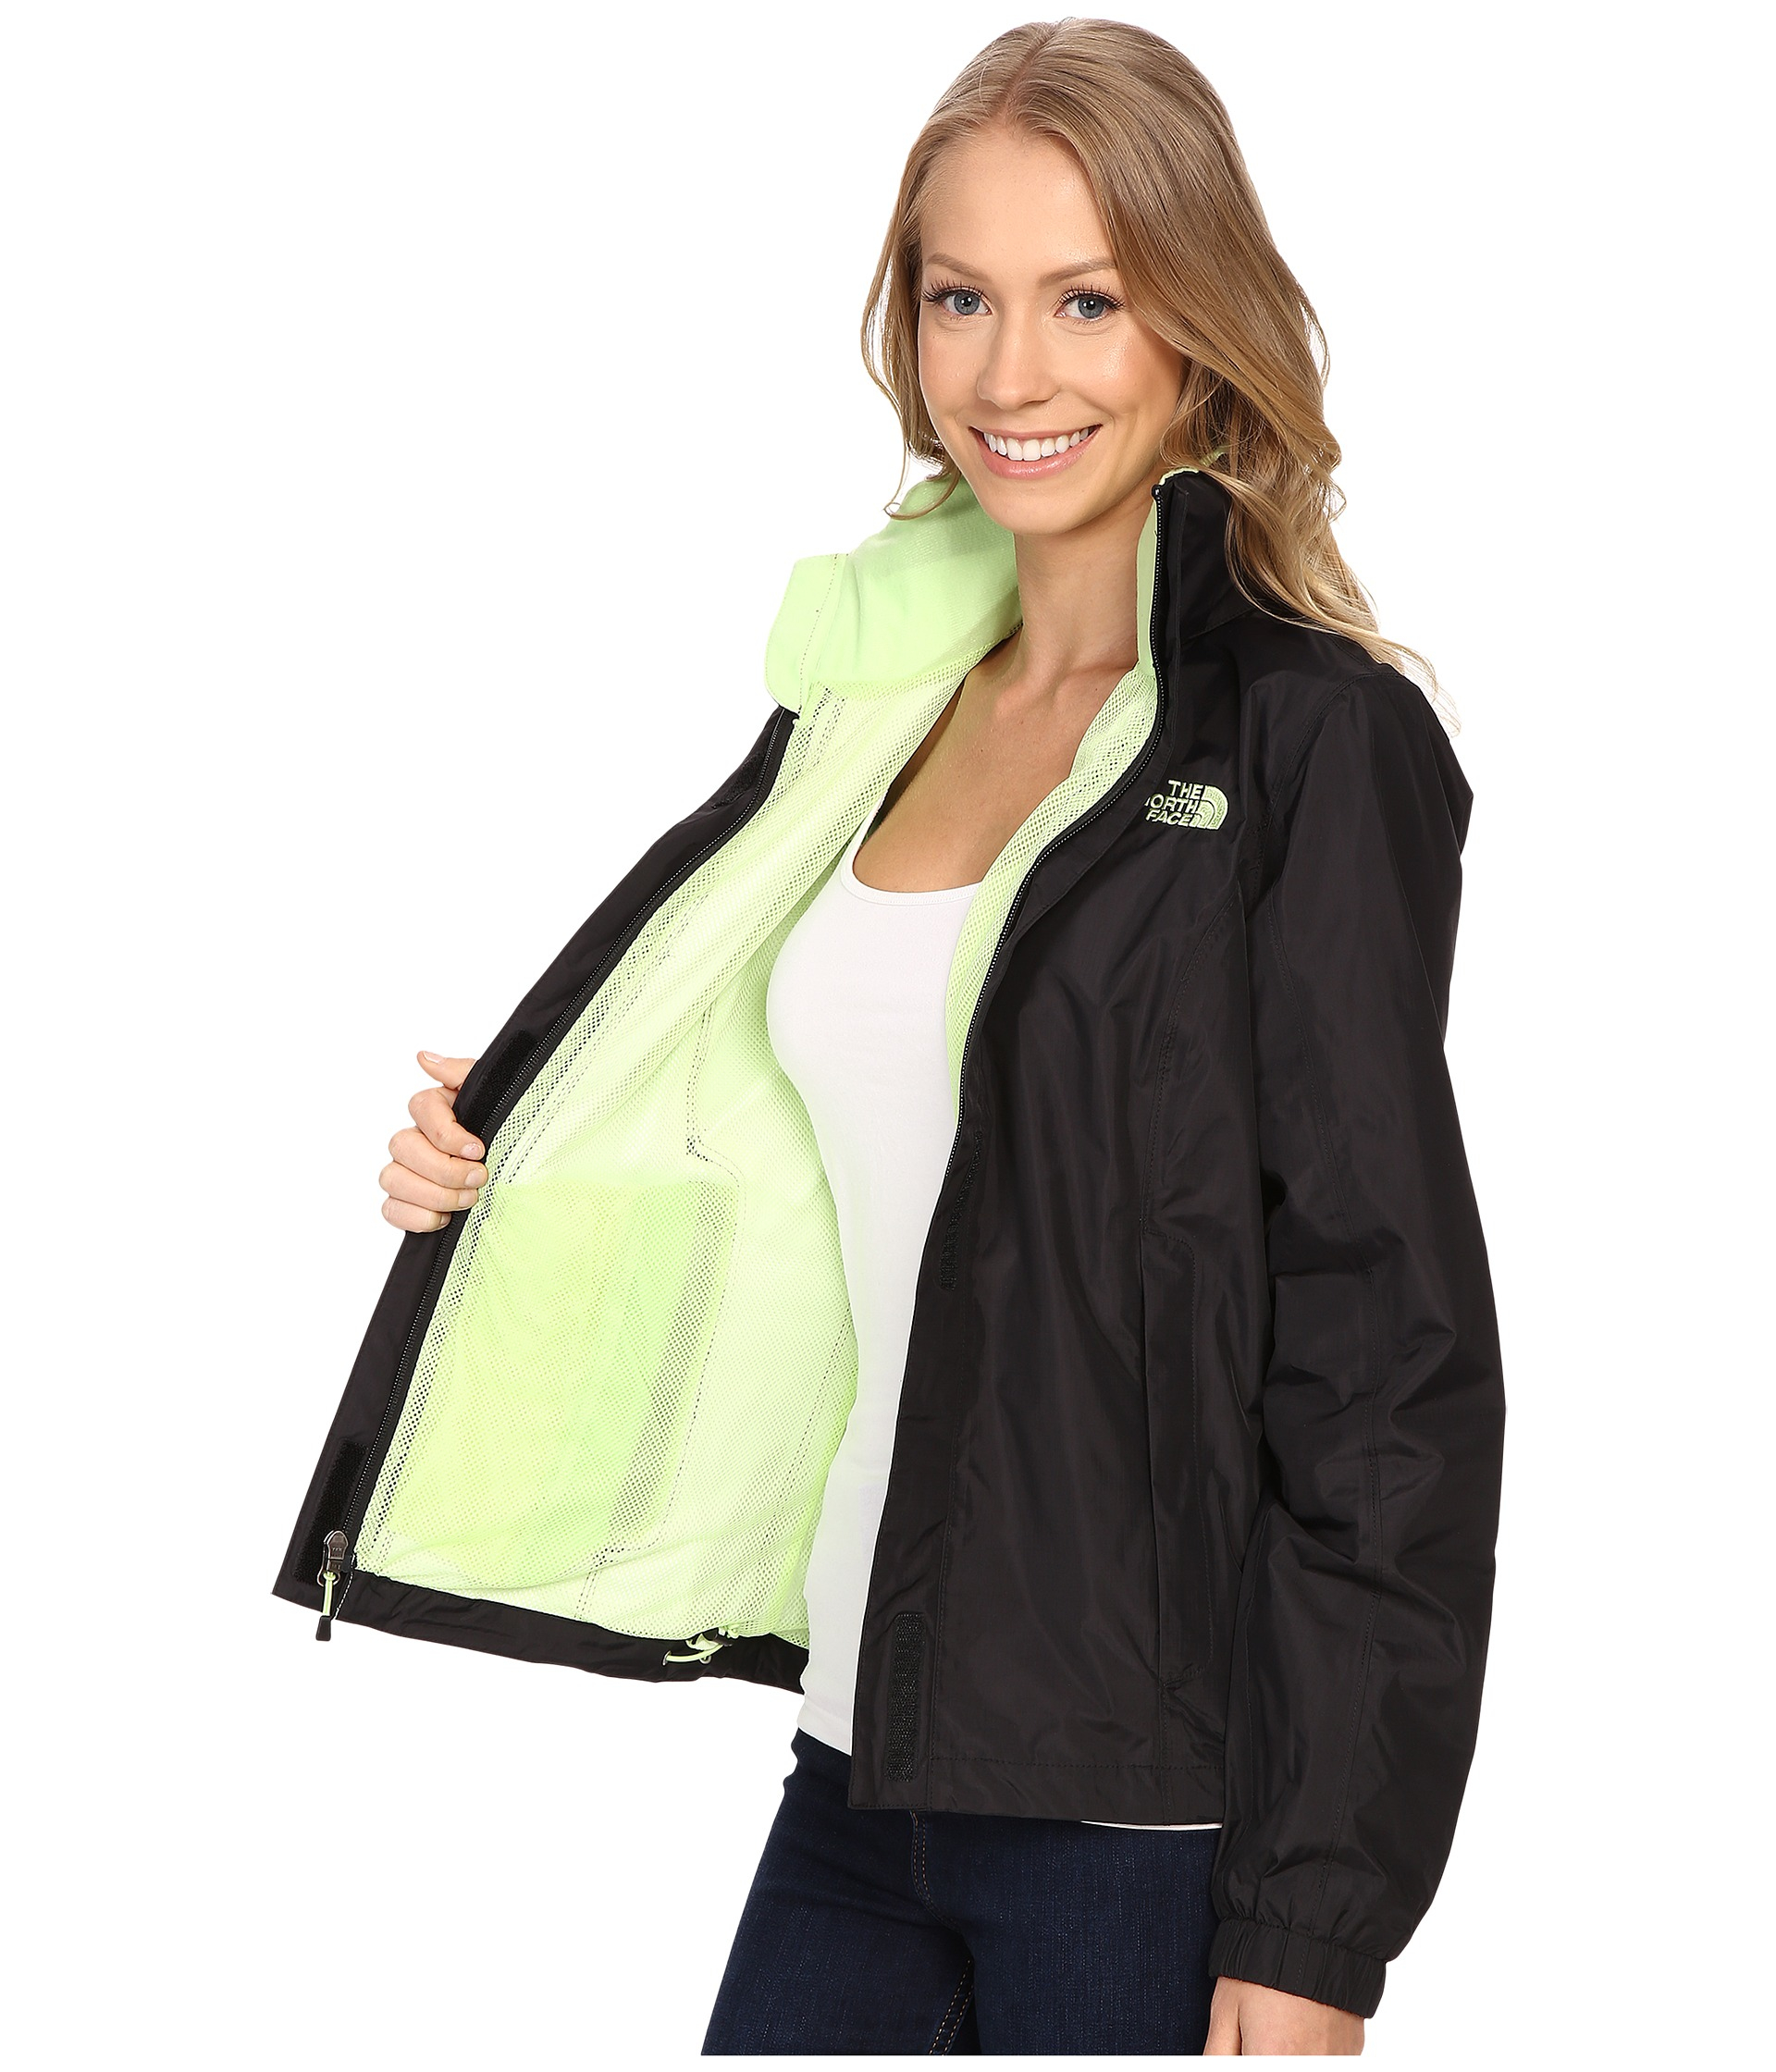 6f0bd5a7c0e The North Face Resolve Jacket in Black - Lyst